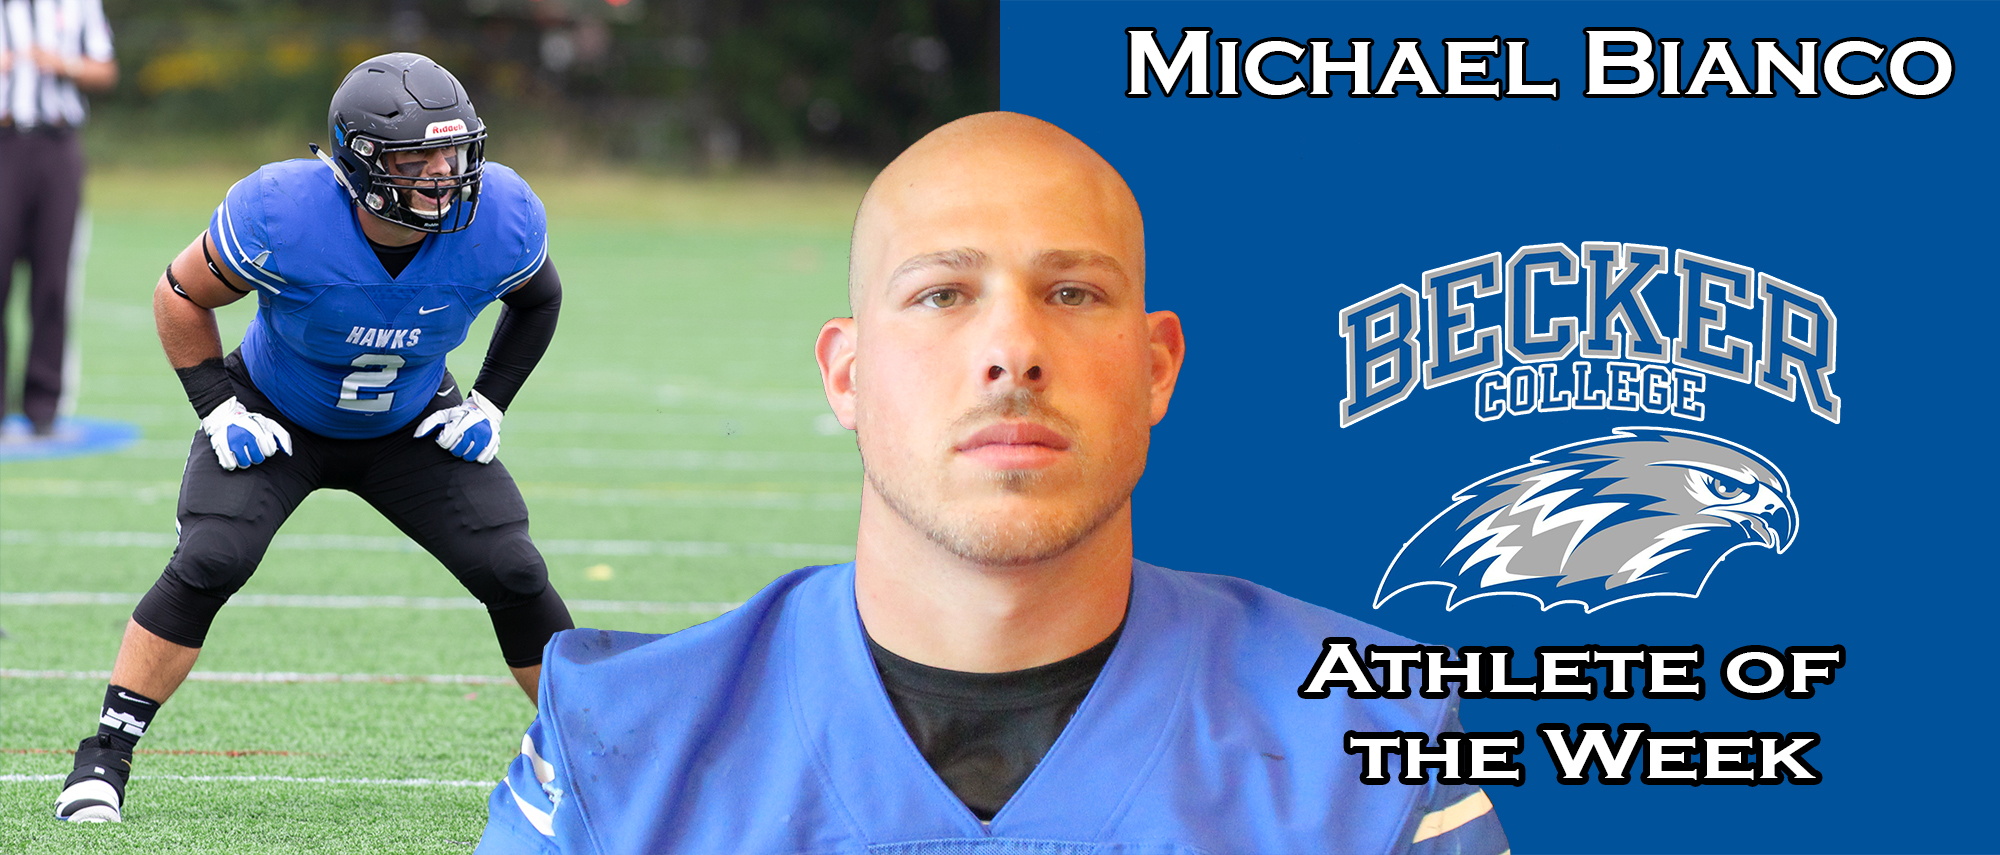 Michael Bianco - Athlete of the Week